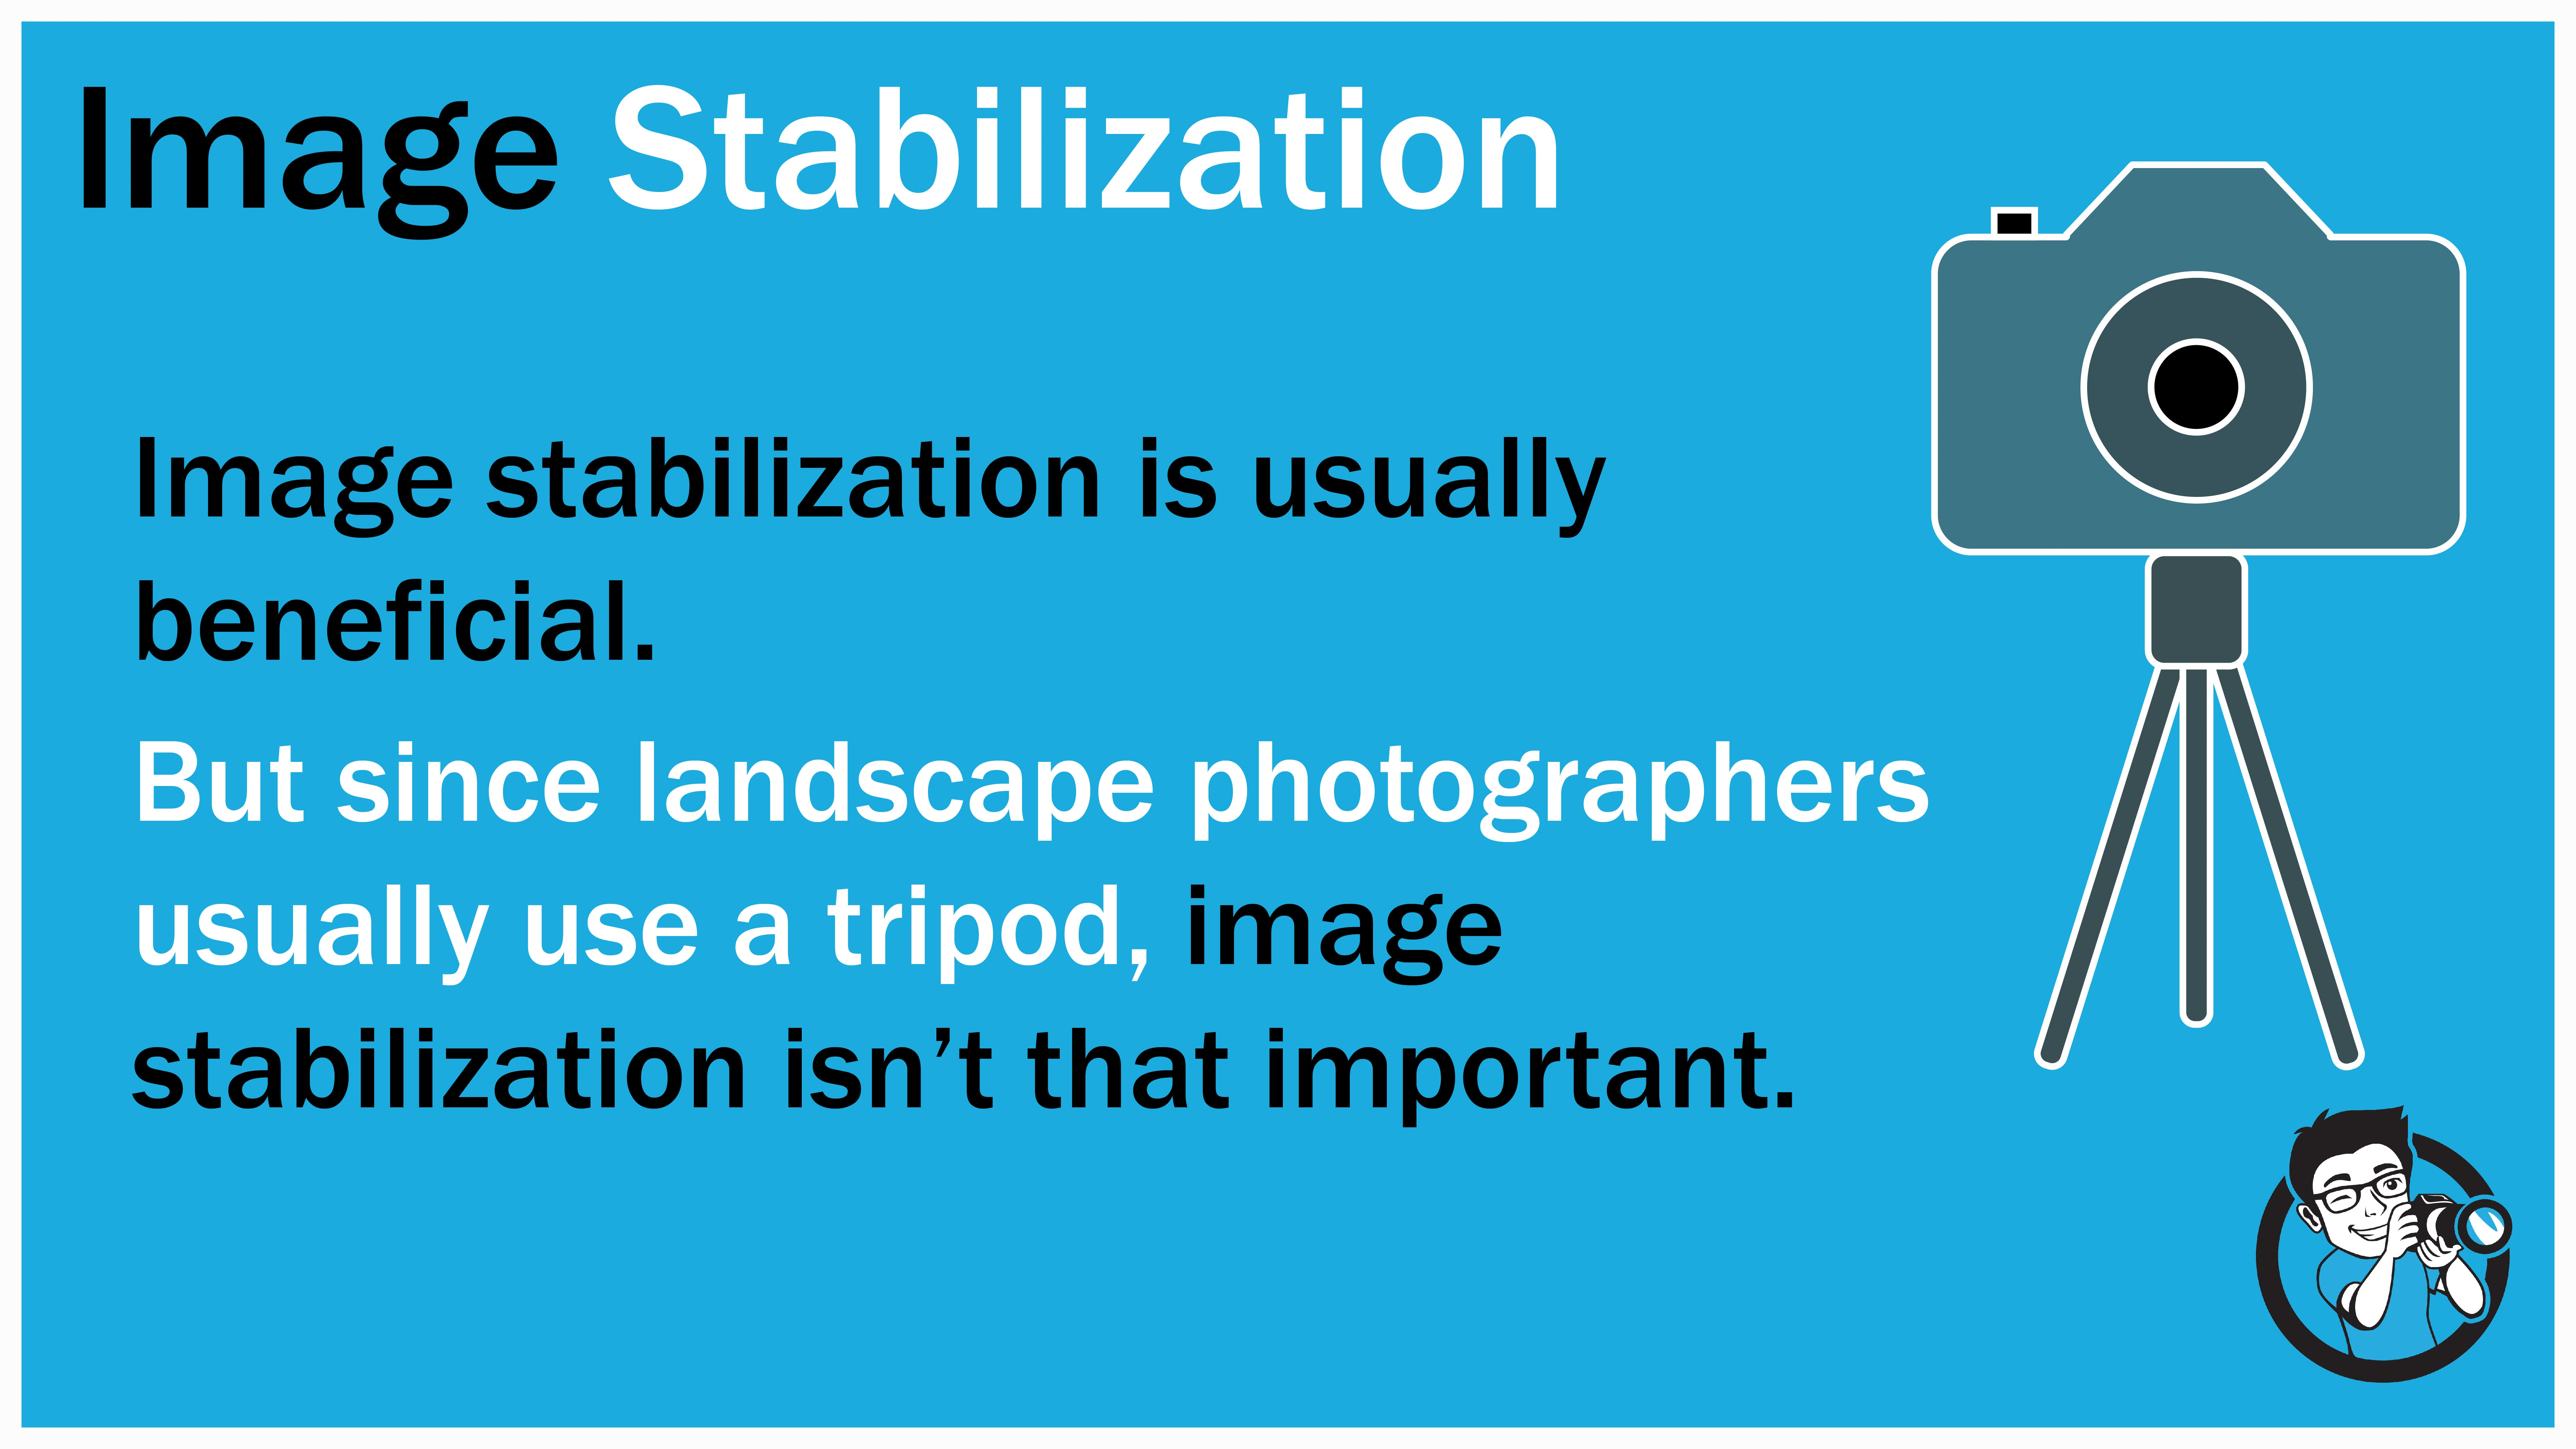 Image stabilization is typically a good choice for photographers but it isn't always necessary for landscape photographers.